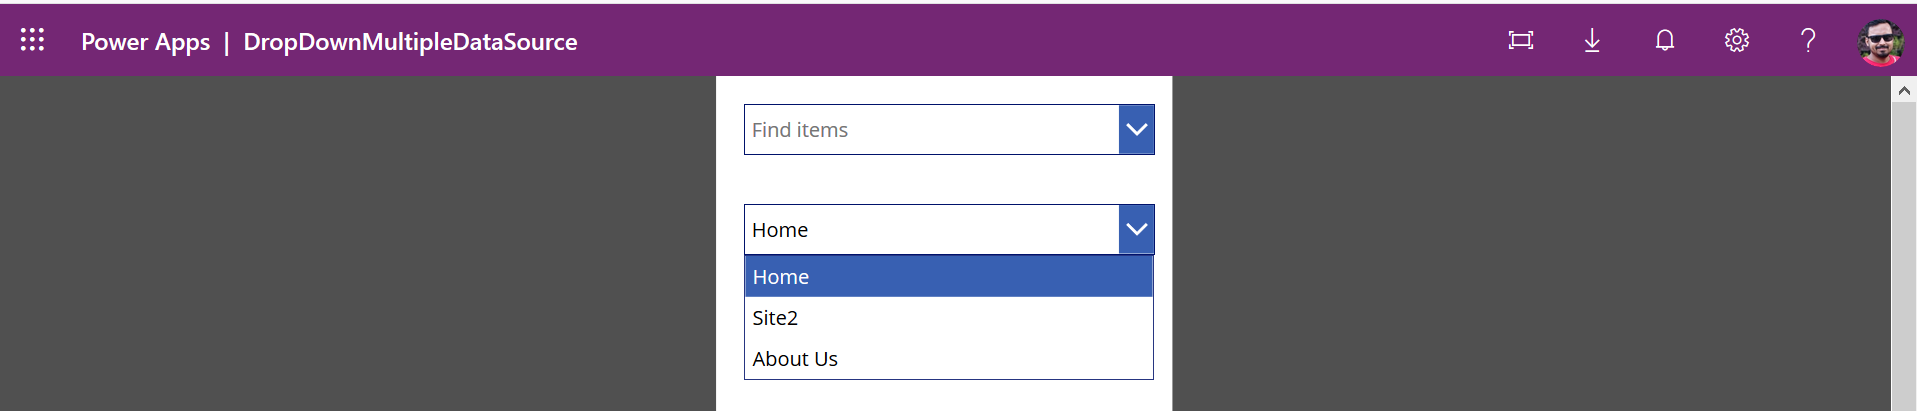 PowerApps Drop down conditional values